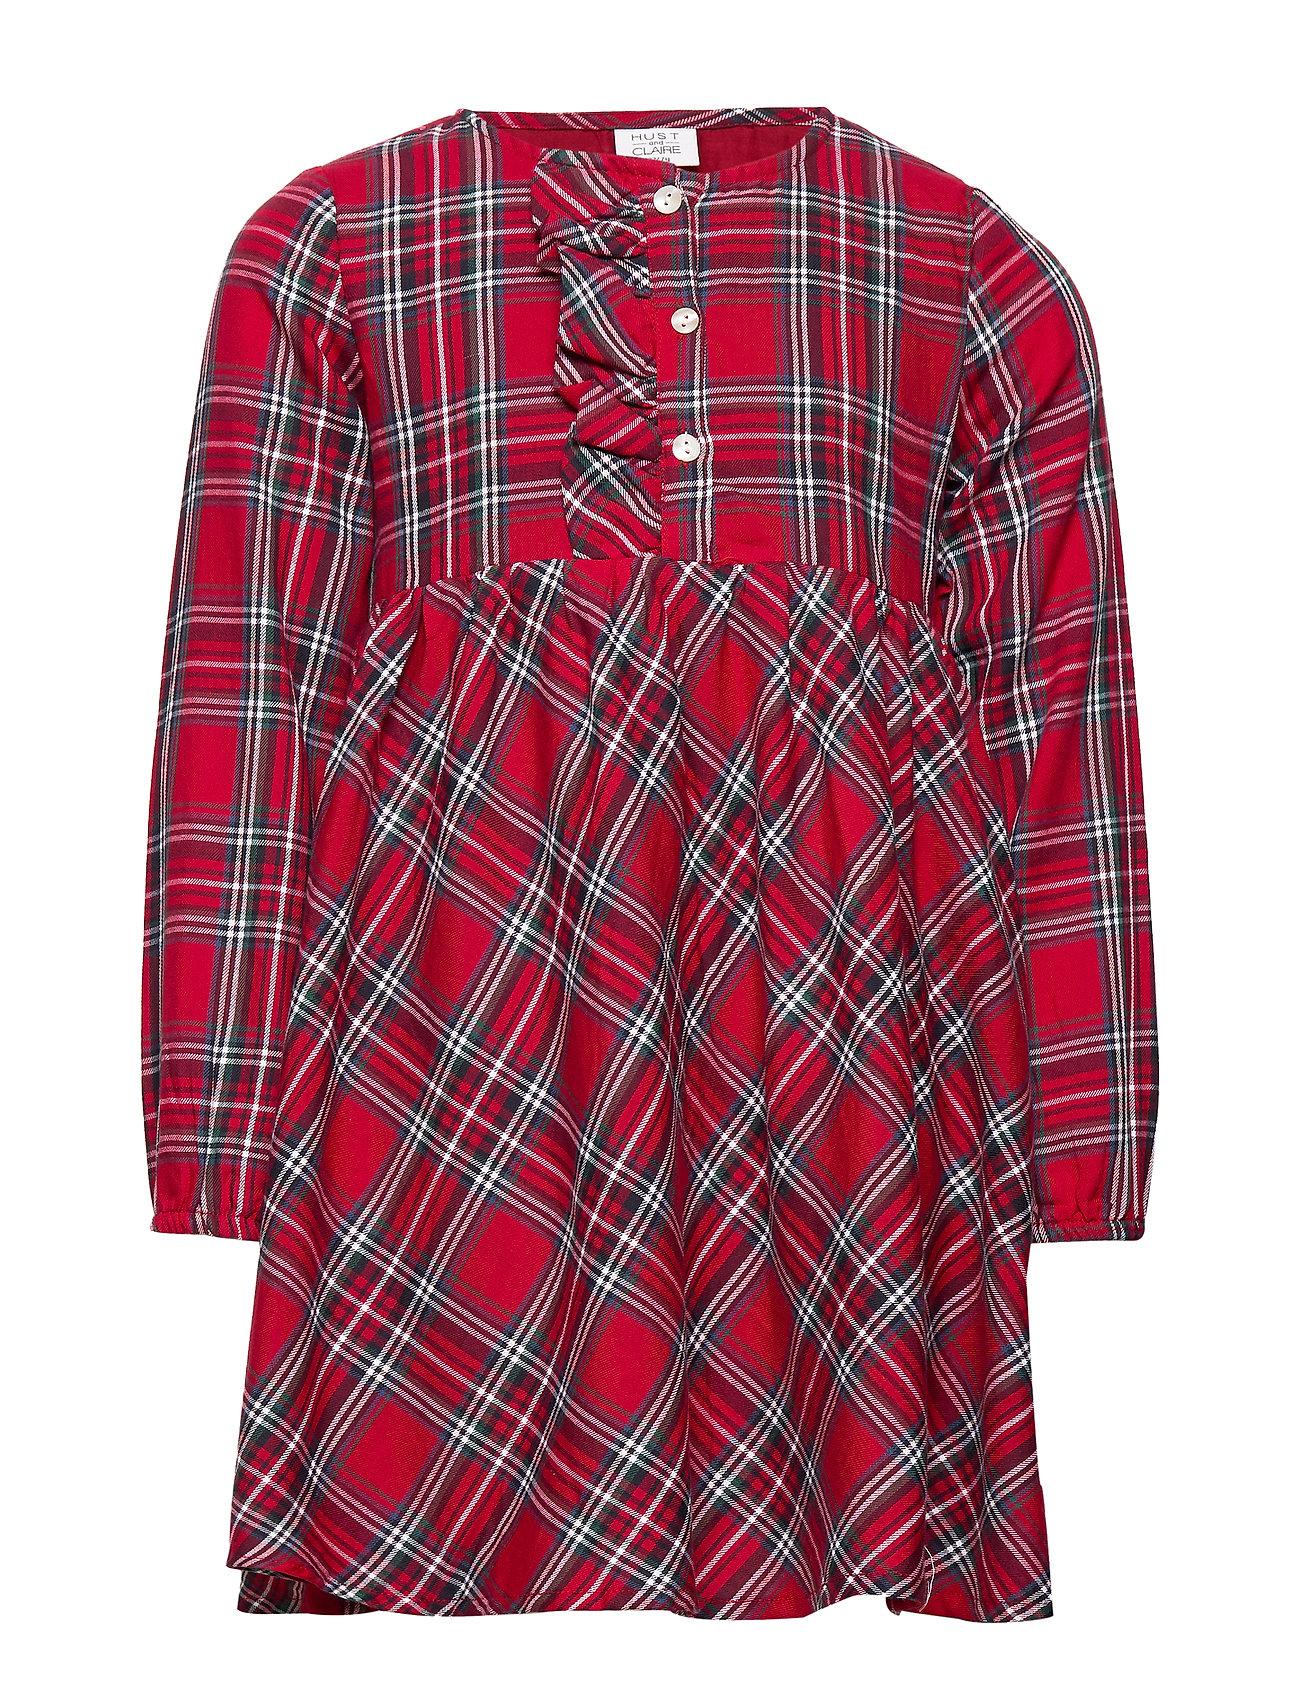 Hust & Claire Debo - Dress - RIO RED